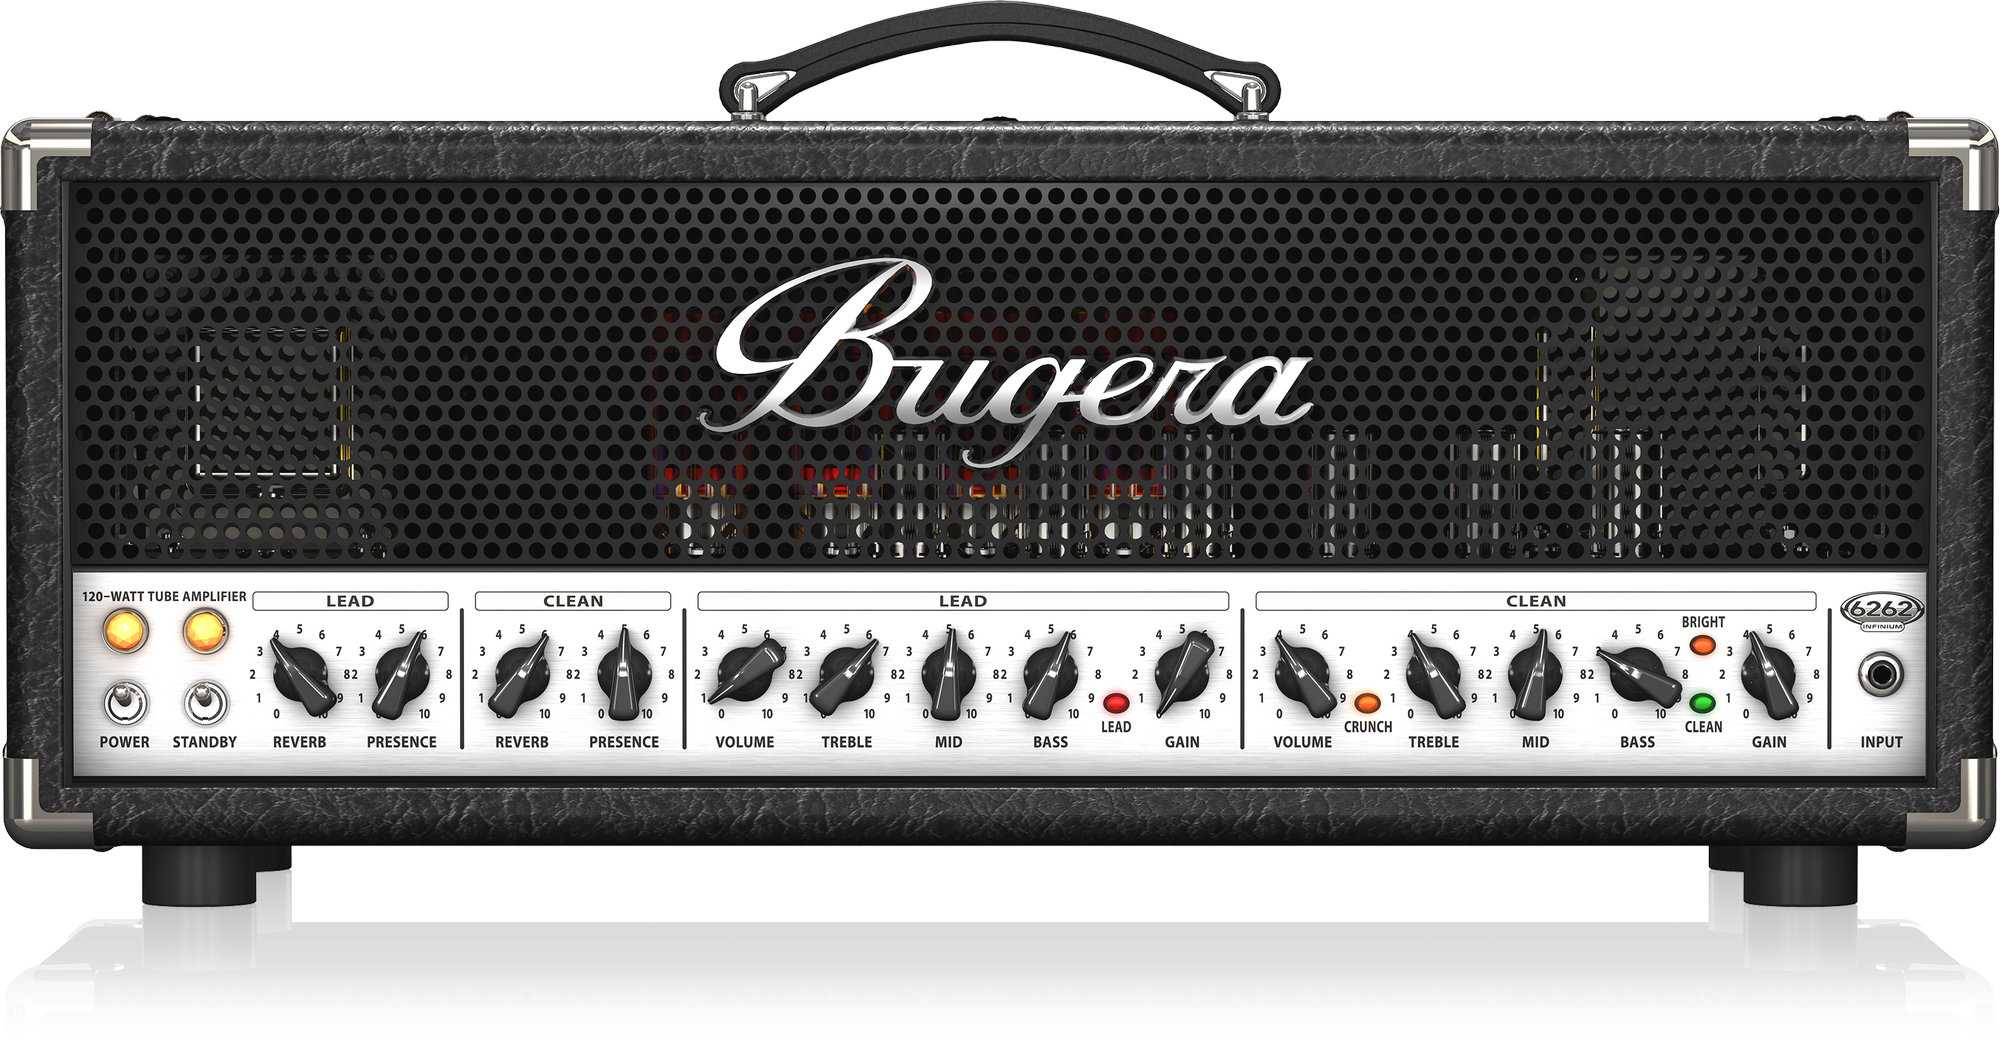 BUGERA 6262 INFINIUM ULTIMATE ROCK TONE 120-WATT 2-CHANNEL VALVE AMPLIFIER HEAD / REVERB & INFINIUM VALVE LIFE MULTIPLIER